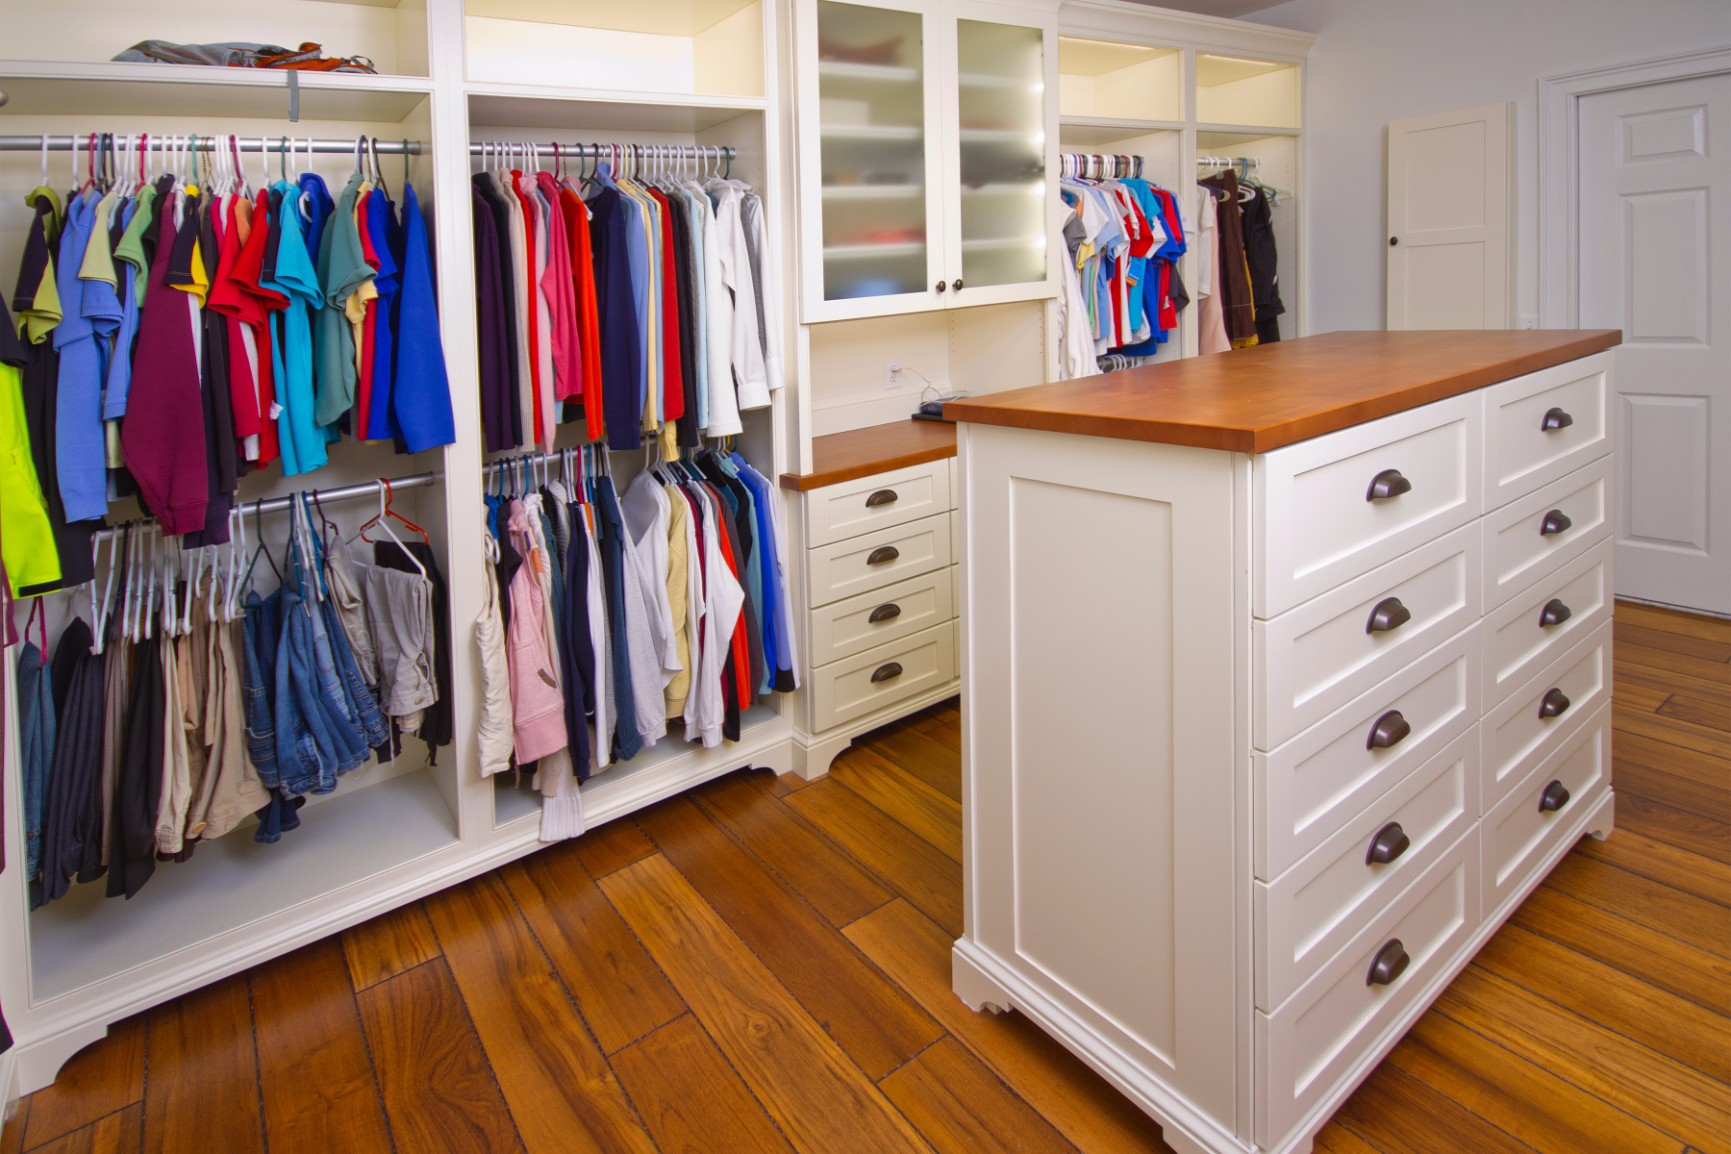 custom closet cabinets space organization custom closets chicago closets top shelf 1st. Black Bedroom Furniture Sets. Home Design Ideas